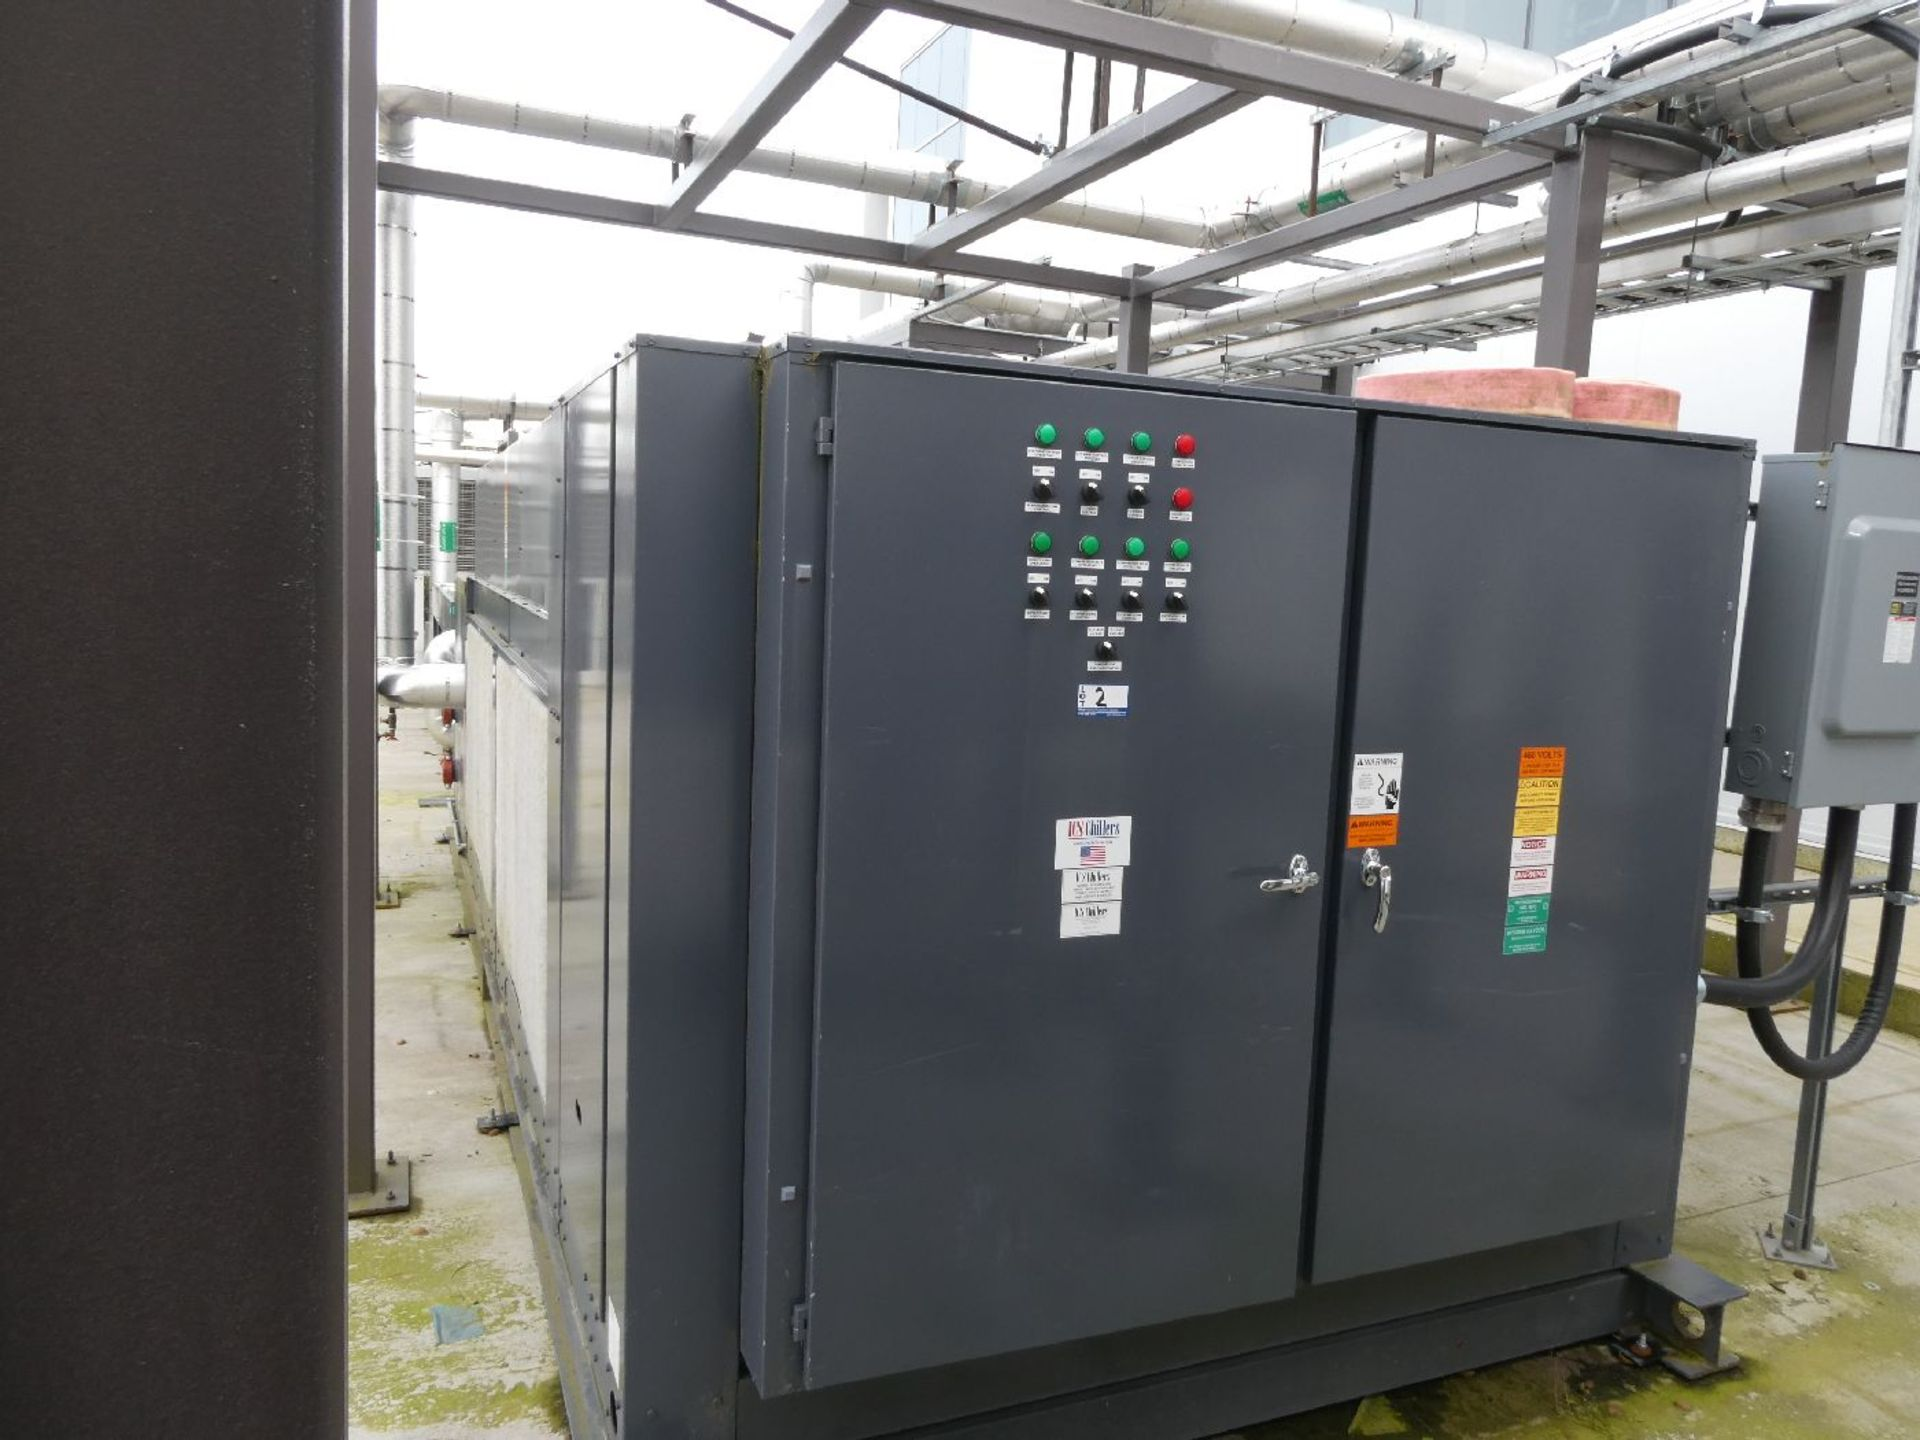 ROTAX Closed Loop Solvent Based Continuous Oil Extraction System - Image 66 of 68